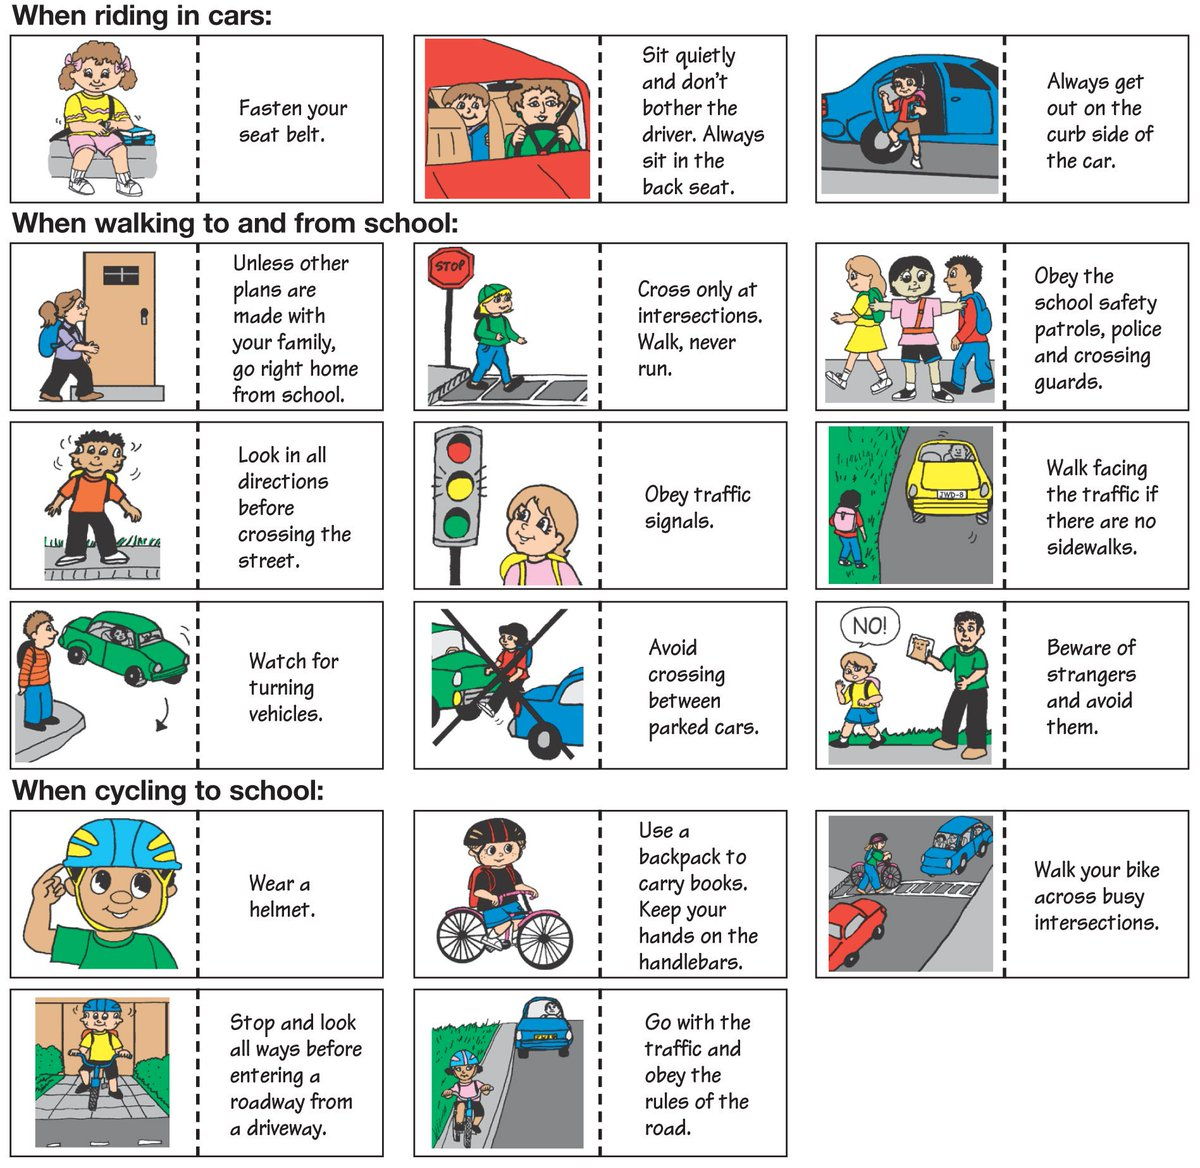 Safe Kids Nigeria On Twitter Beroadsmart Road Safety Knowledge Can Save Lives Teach Your